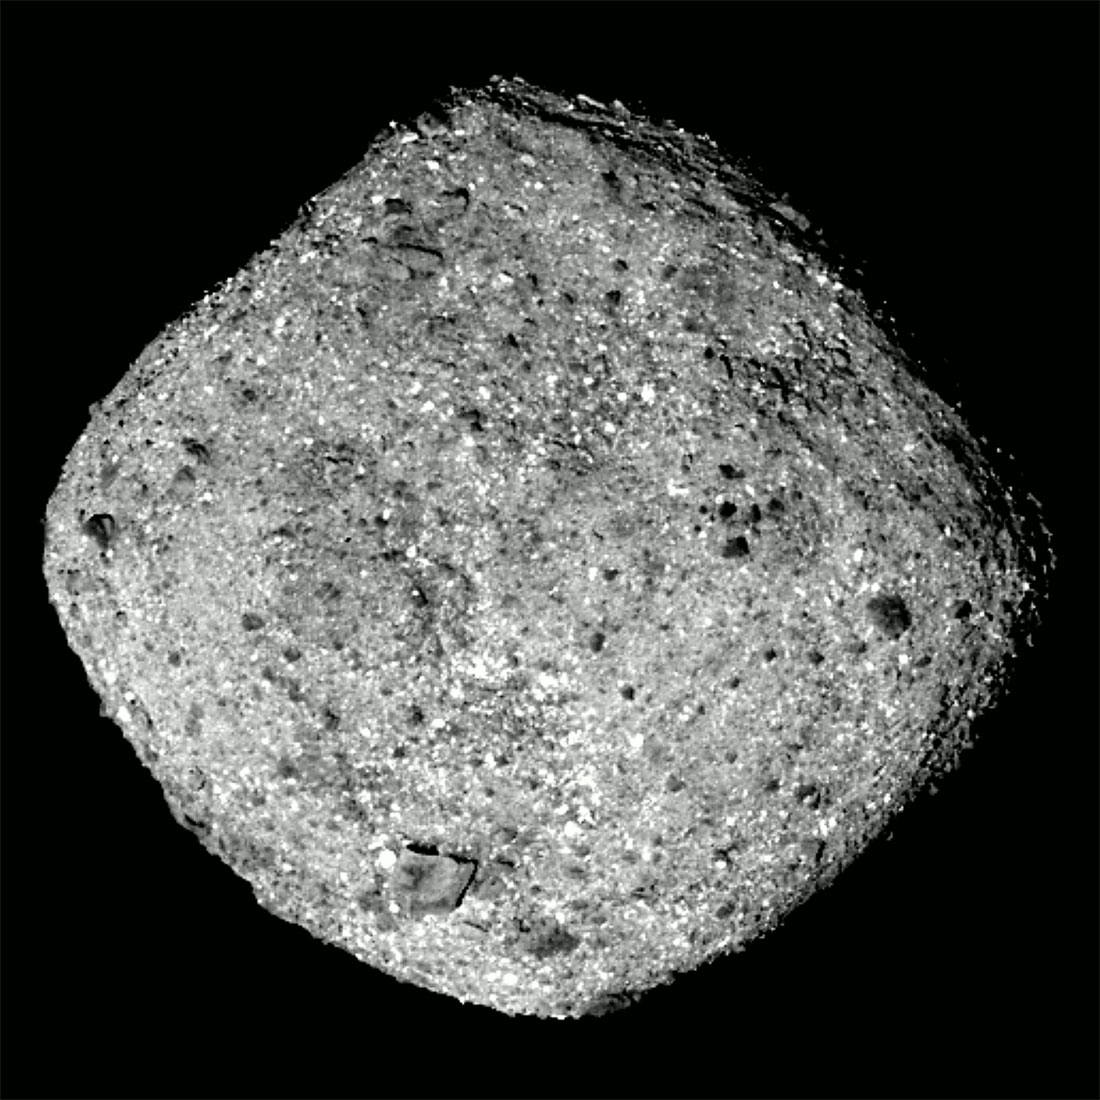 This image of Bennu was taken by the OSIRIS-REx spacecraft from a distance of around 50 miles (80 km). Credits: NASA/Goddard/University of Arizona